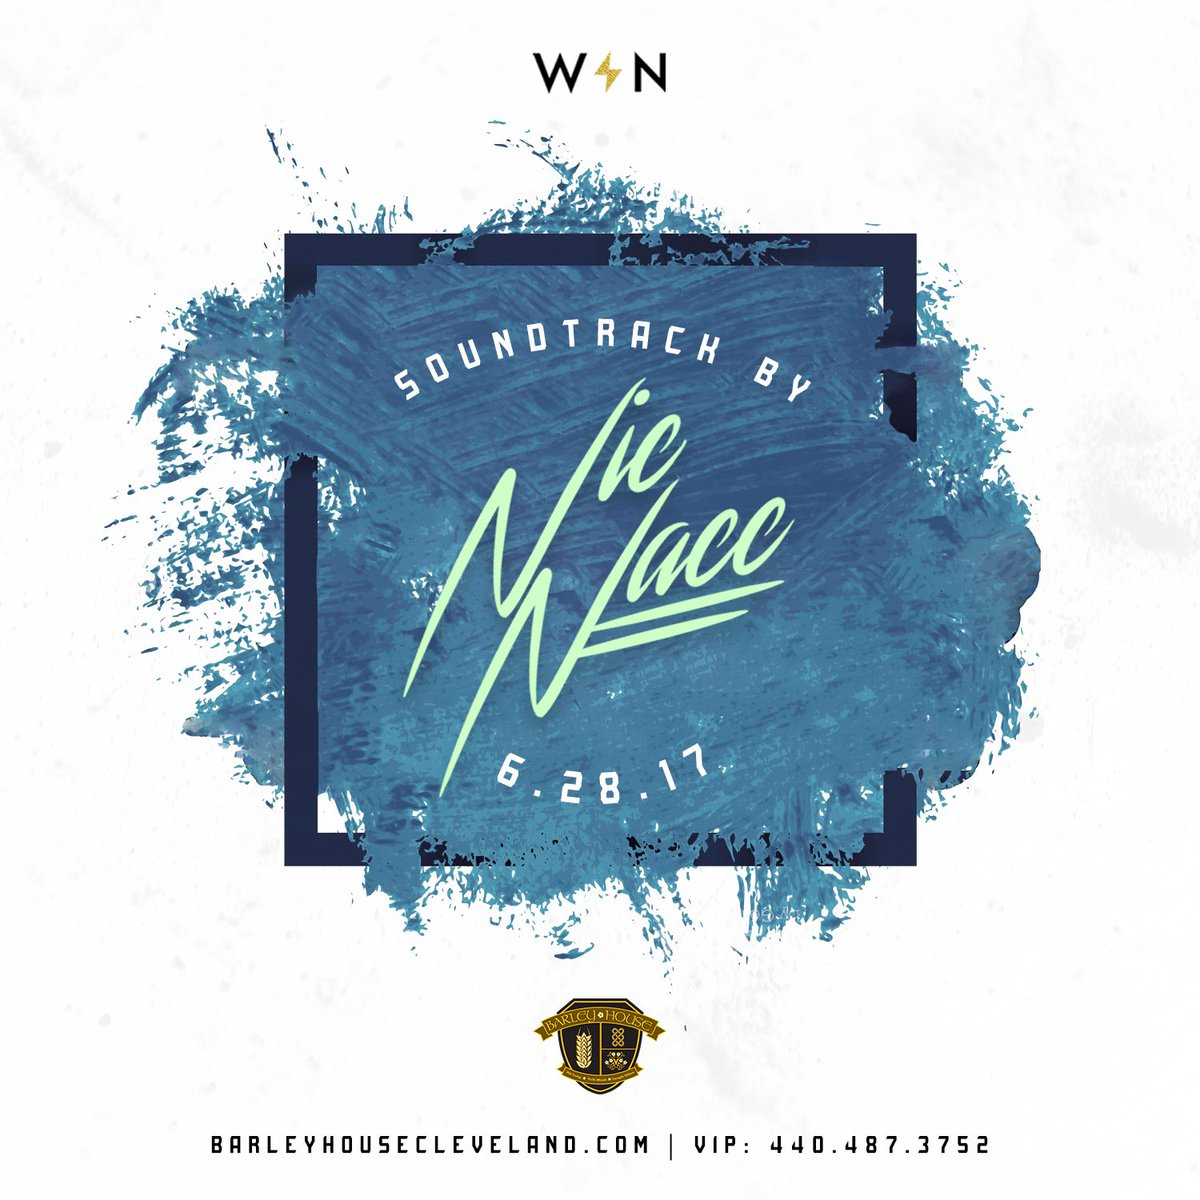 Tonight we are back at it!!! @_NicNacc from 10pm-2am & fresh juice cocktails on the side patio all night!! https://t.co/8tFWfYfWHW